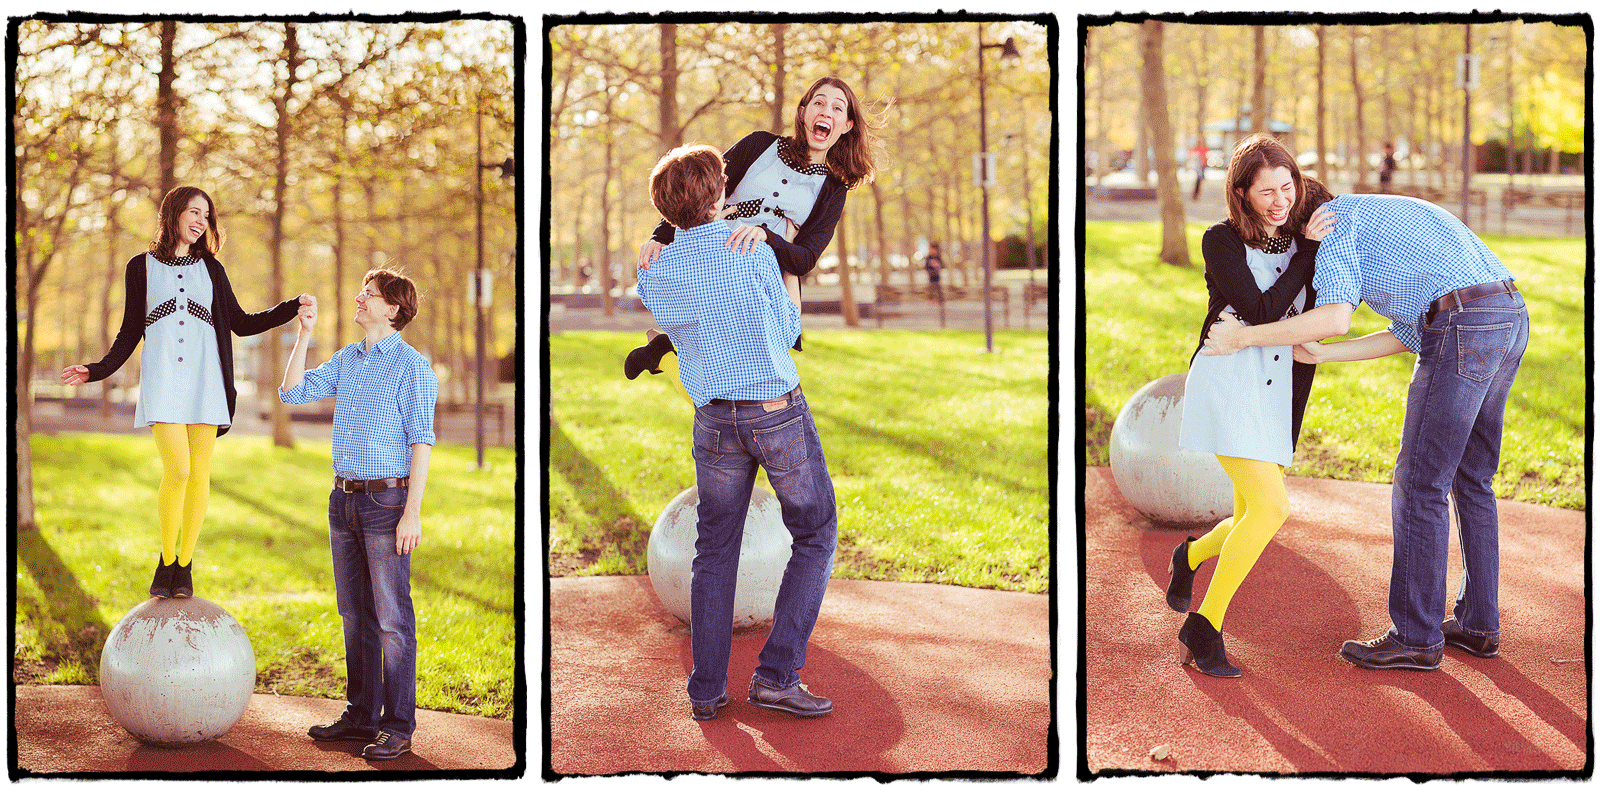 Engagement Portraits: Lauren & Dano goof around in Hoboken, New Jersey.